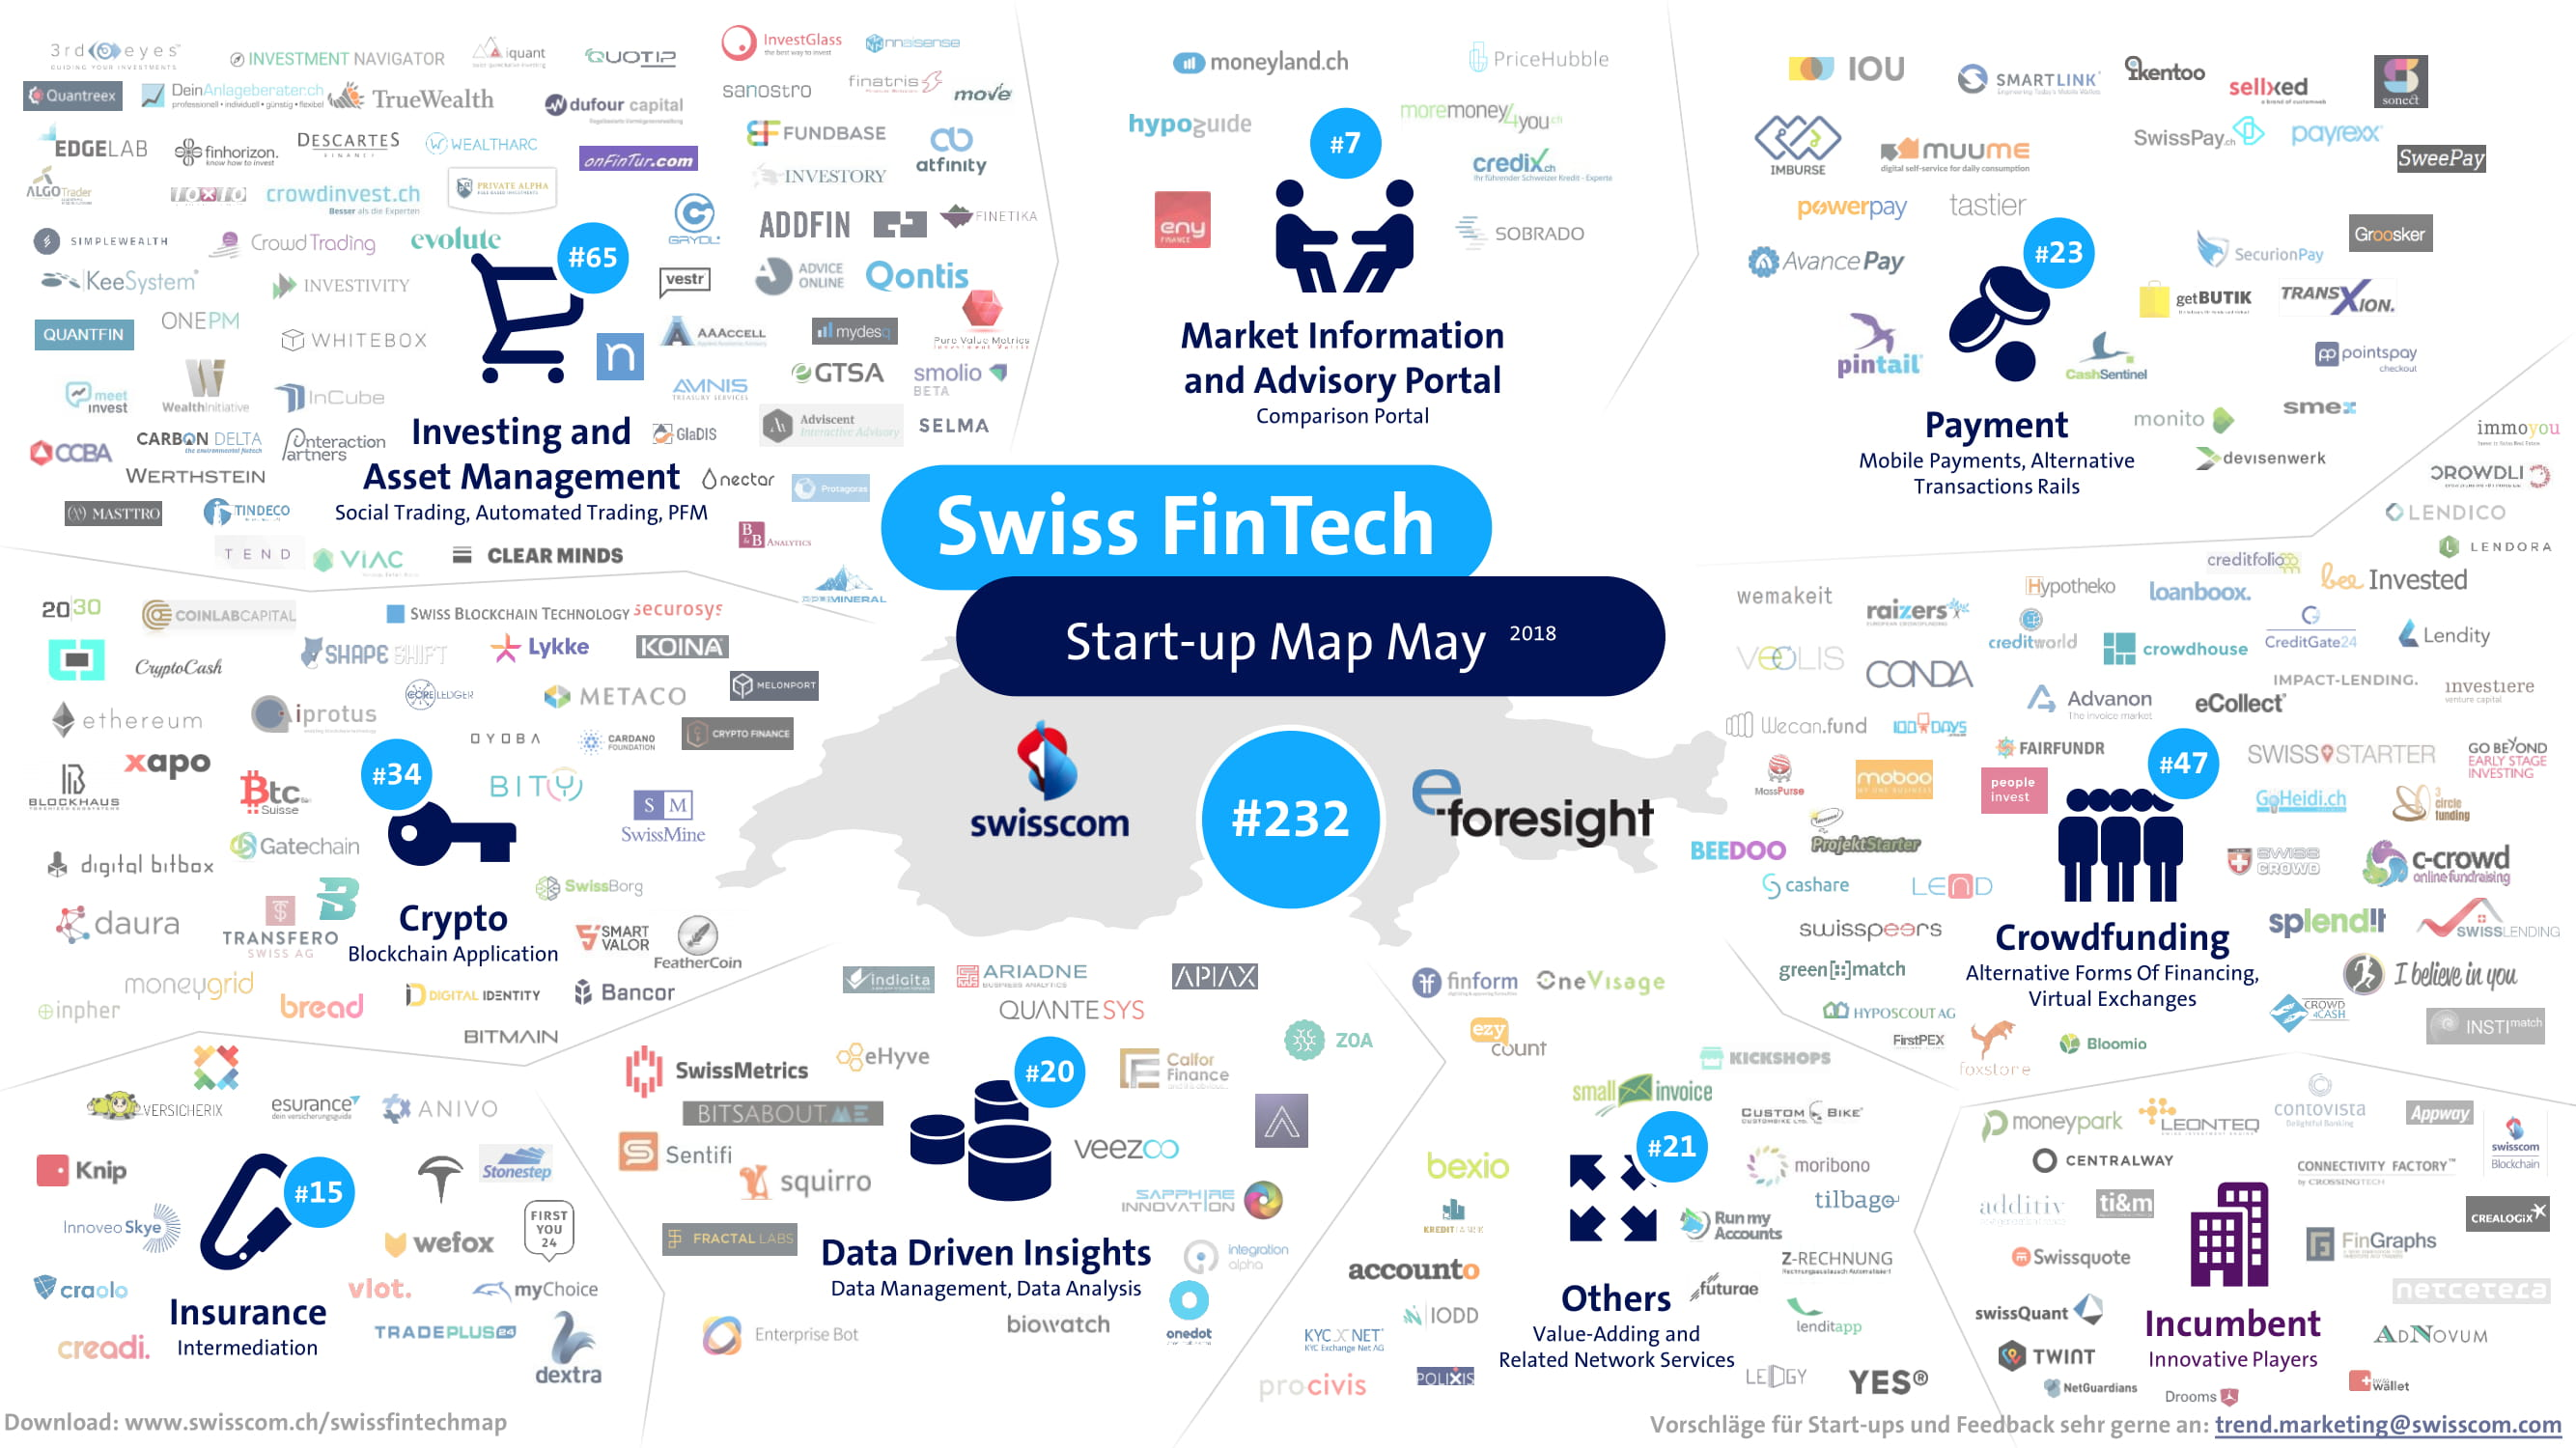 Swisscom Swiss Fintech Startups May 2018